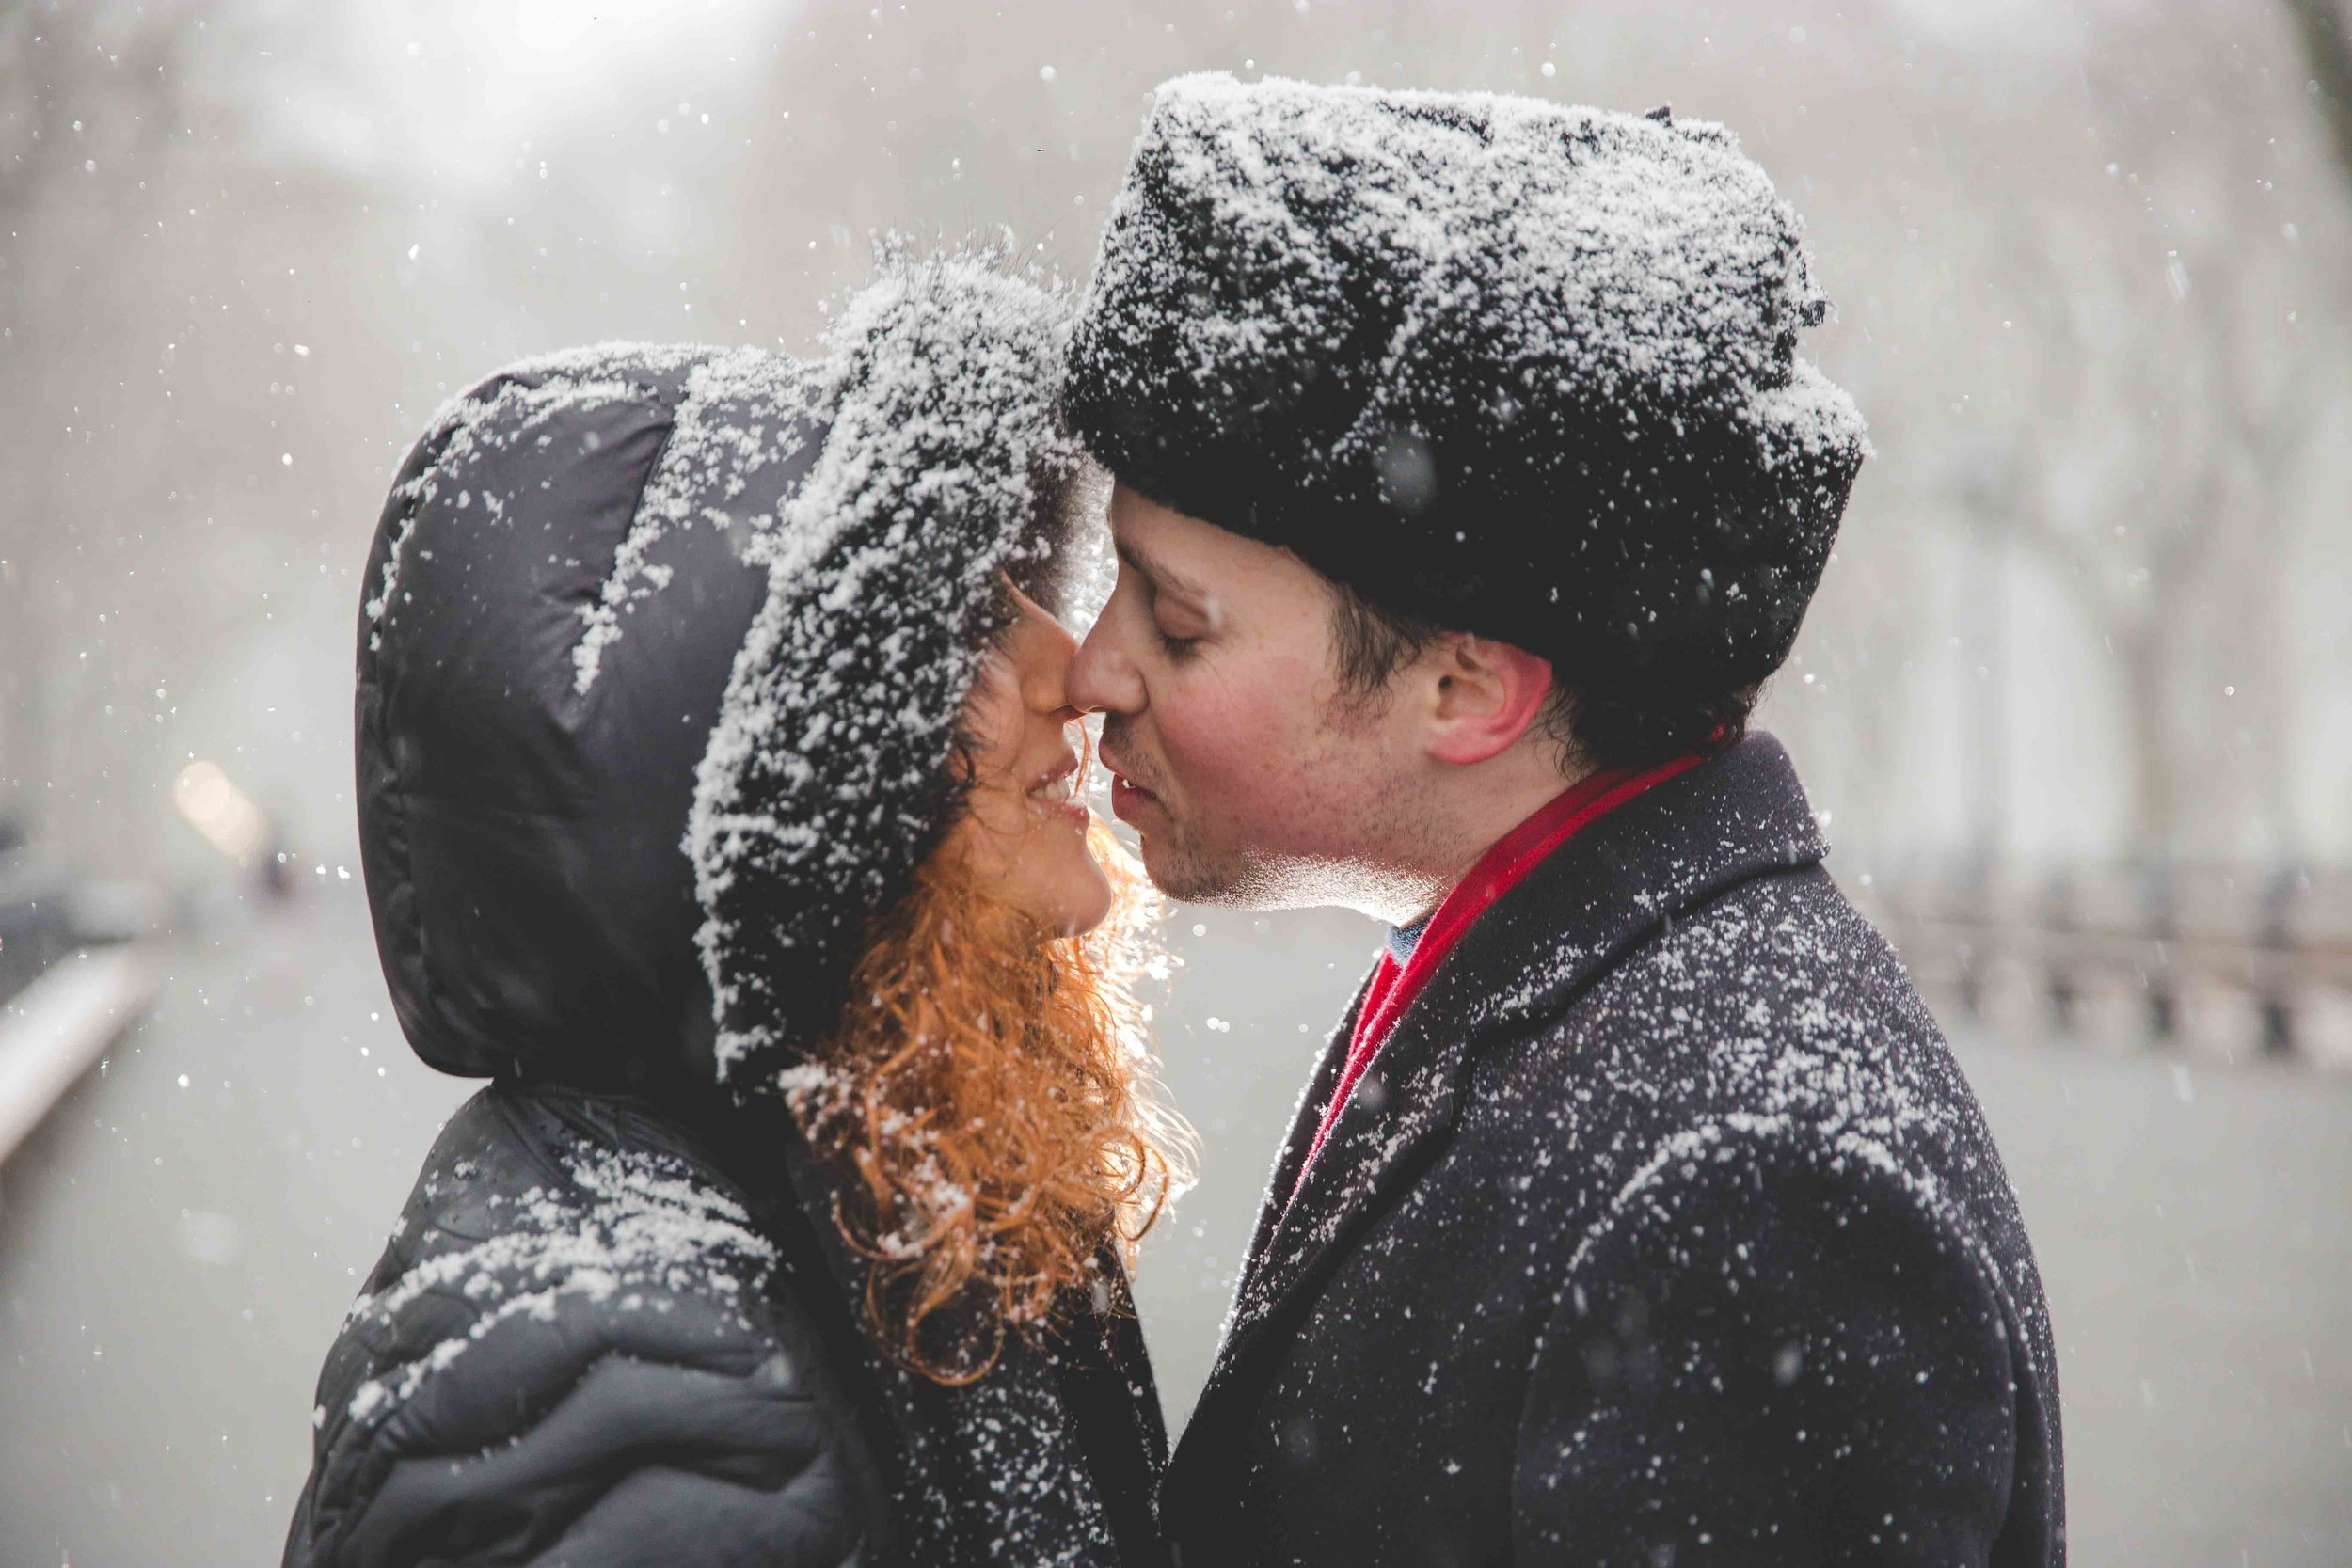 central-park-proposal-engagment-photography-snow-13.jpg